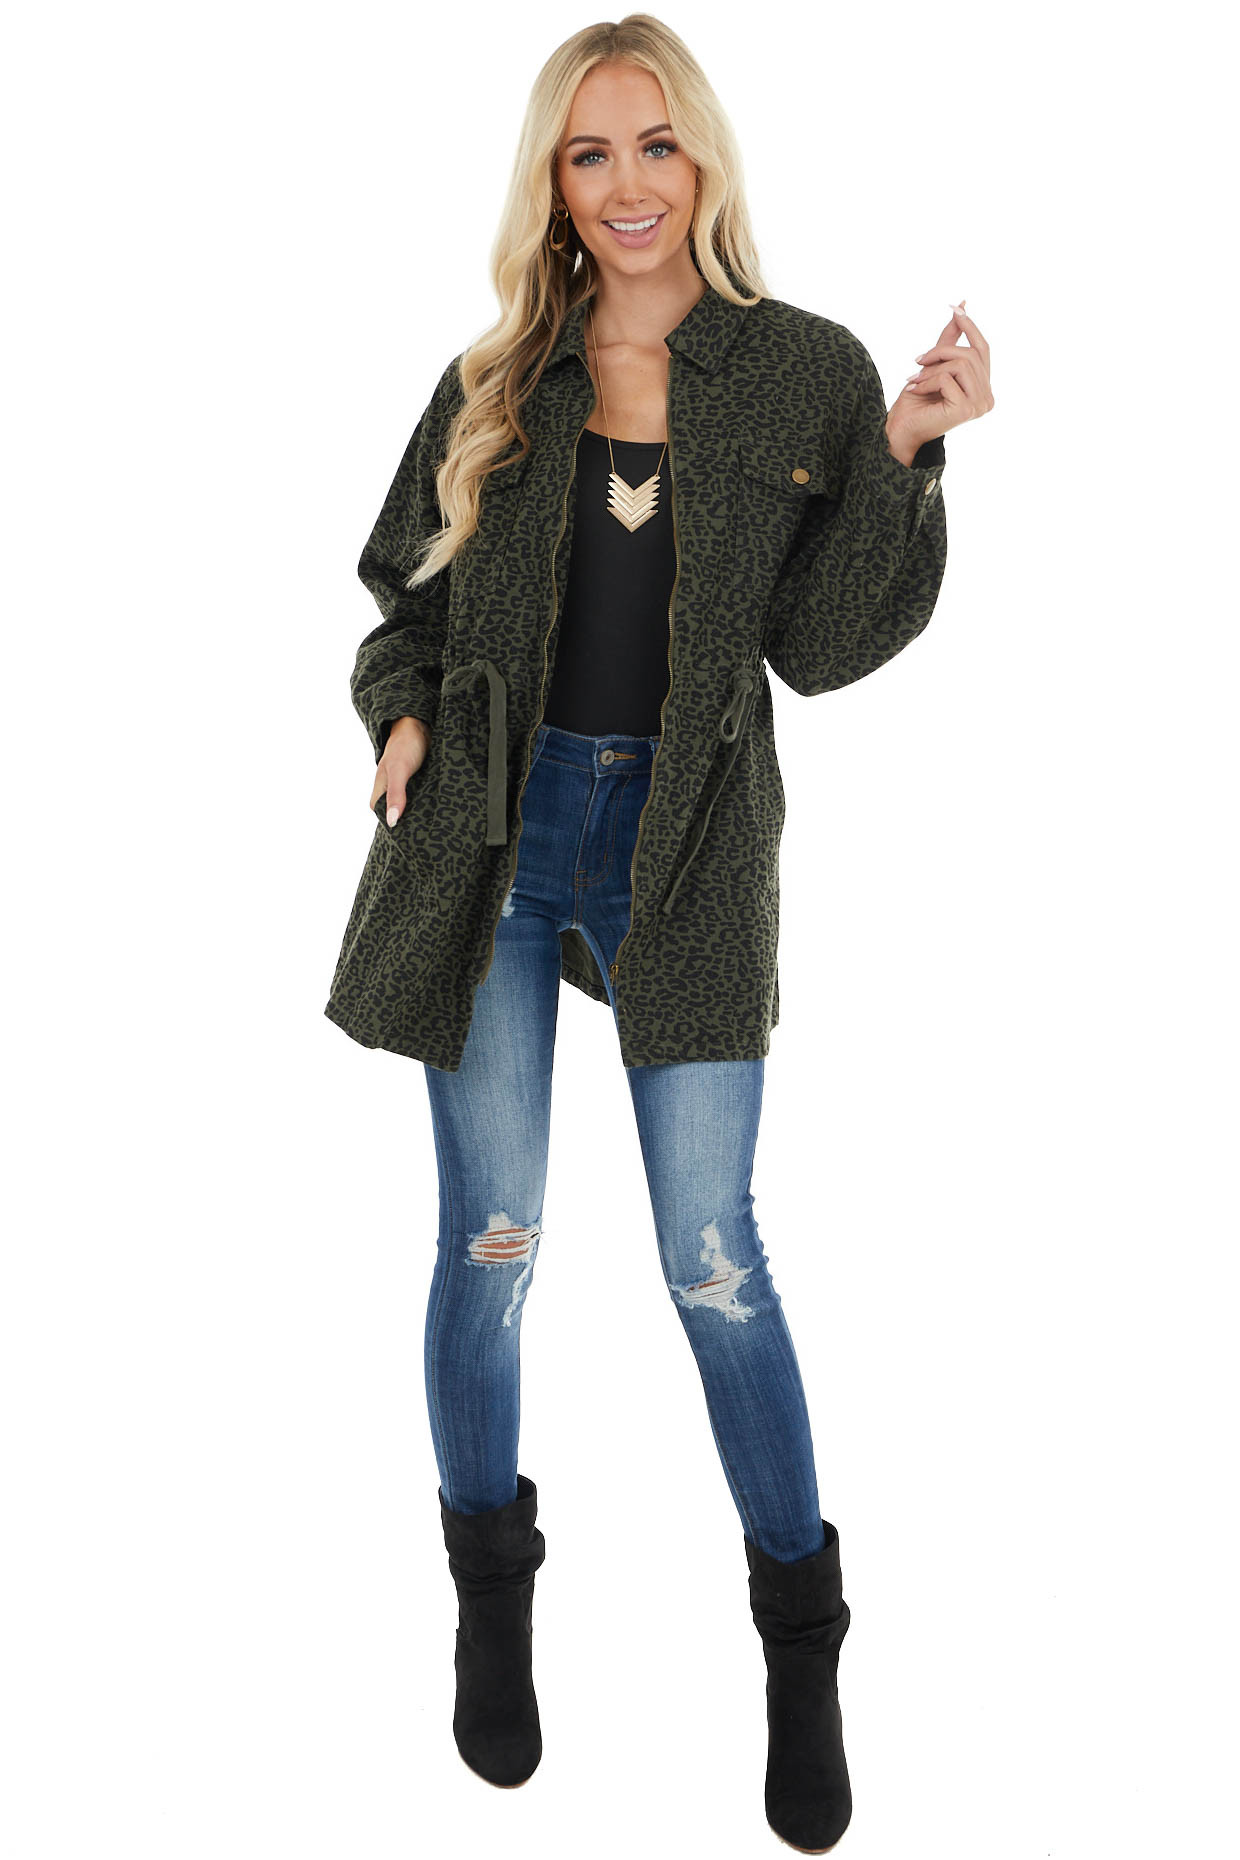 Olive and Black Leopard Print Jacket with Drawstring Waist